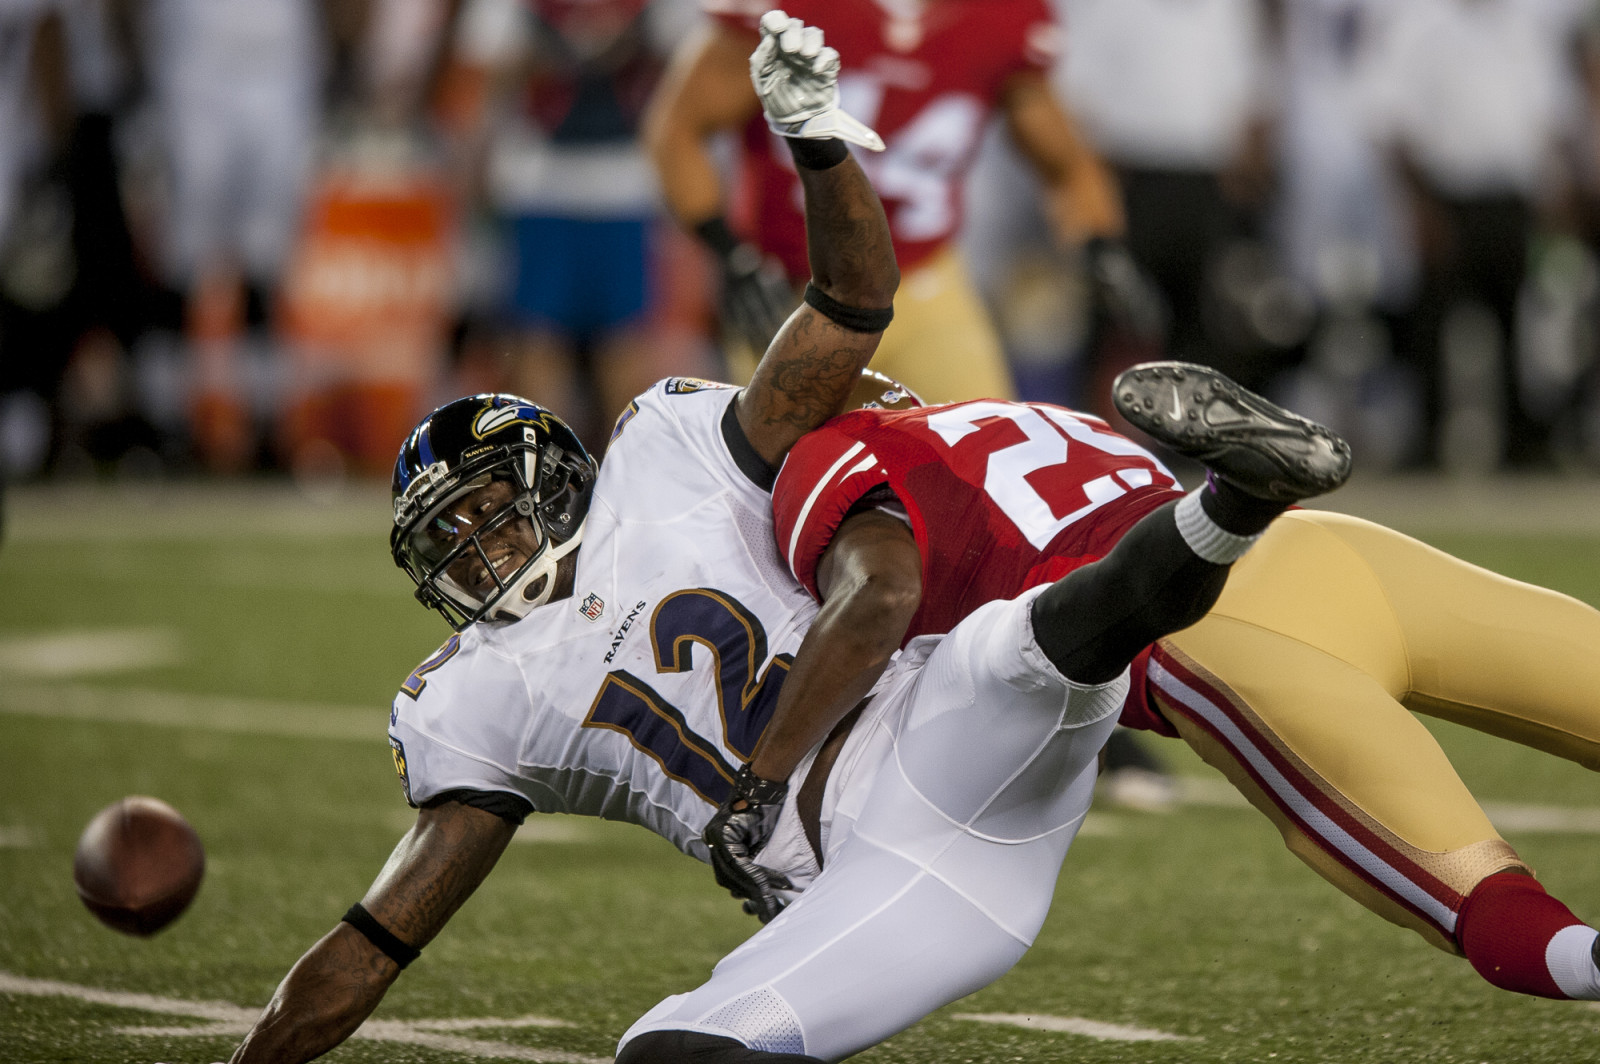 Baltimore Ravens wide-receiver Jacoby Jones  mishandles a pass against the San Francisco 49ers during the first quarter of their pre-season game at M&T Bank Stadium on August 7, 2014 in Baltimore, Maryland. UPI/Pete Marovich